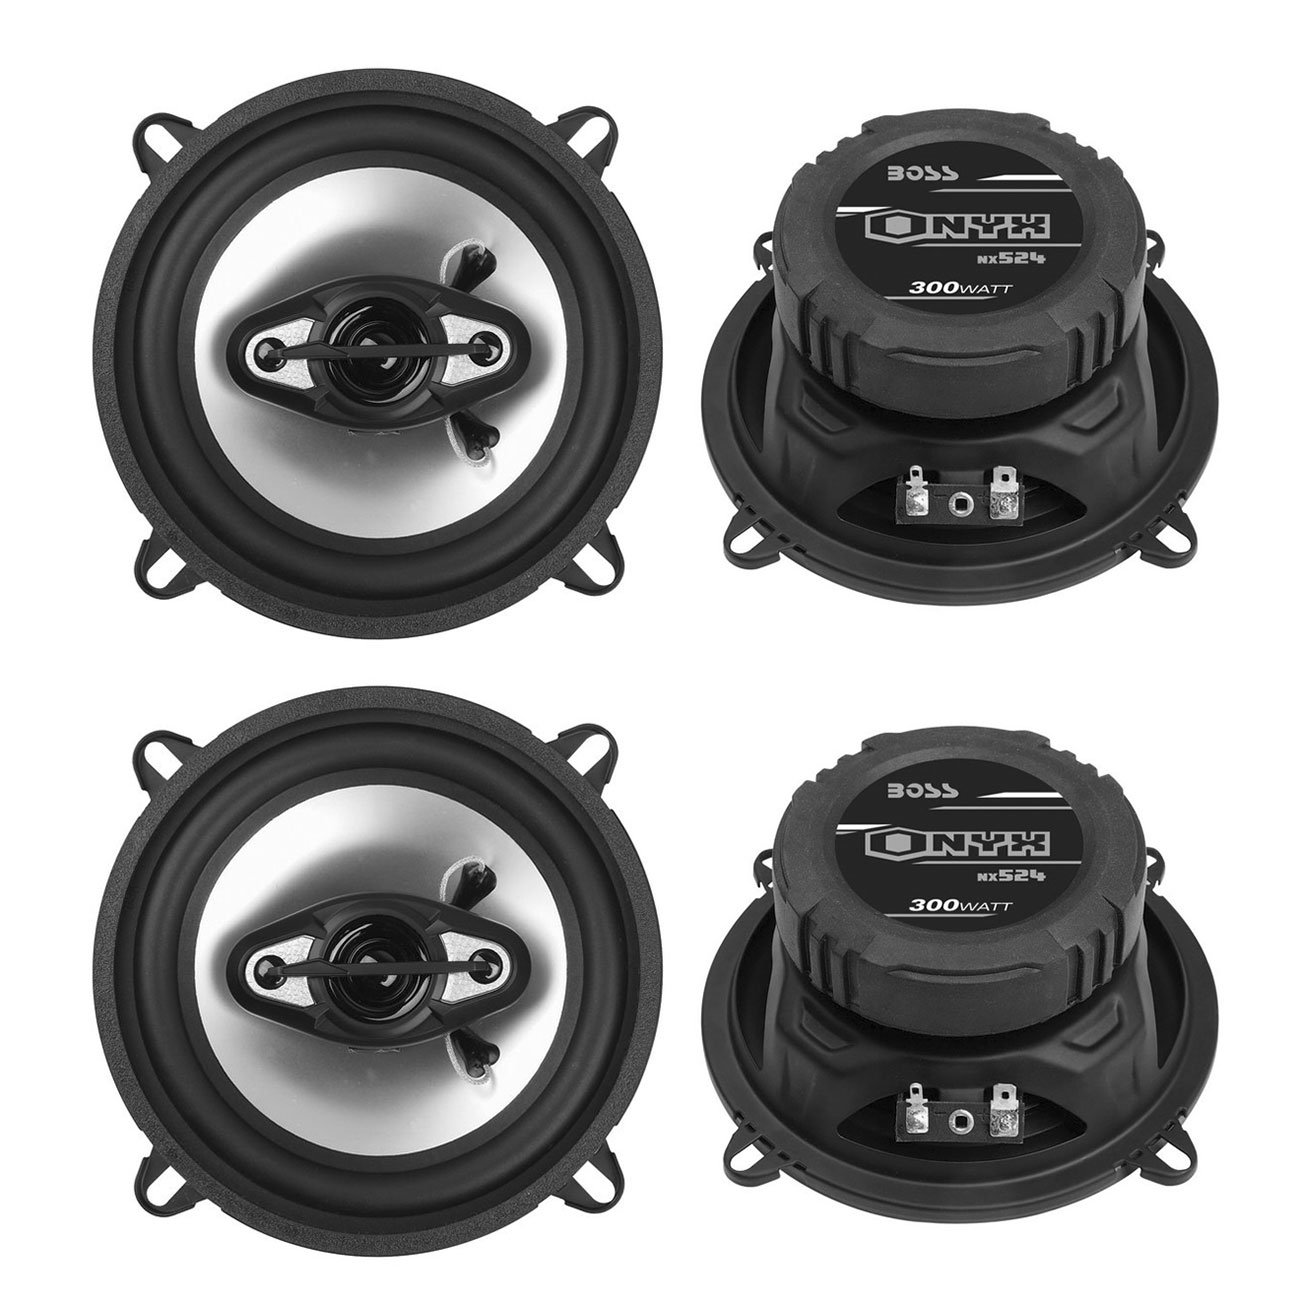 "BOSS NX524 5.25"" 300W 4-Way Car Coaxial Speakers Stereo Black 4 Ohm (4 Pack)"